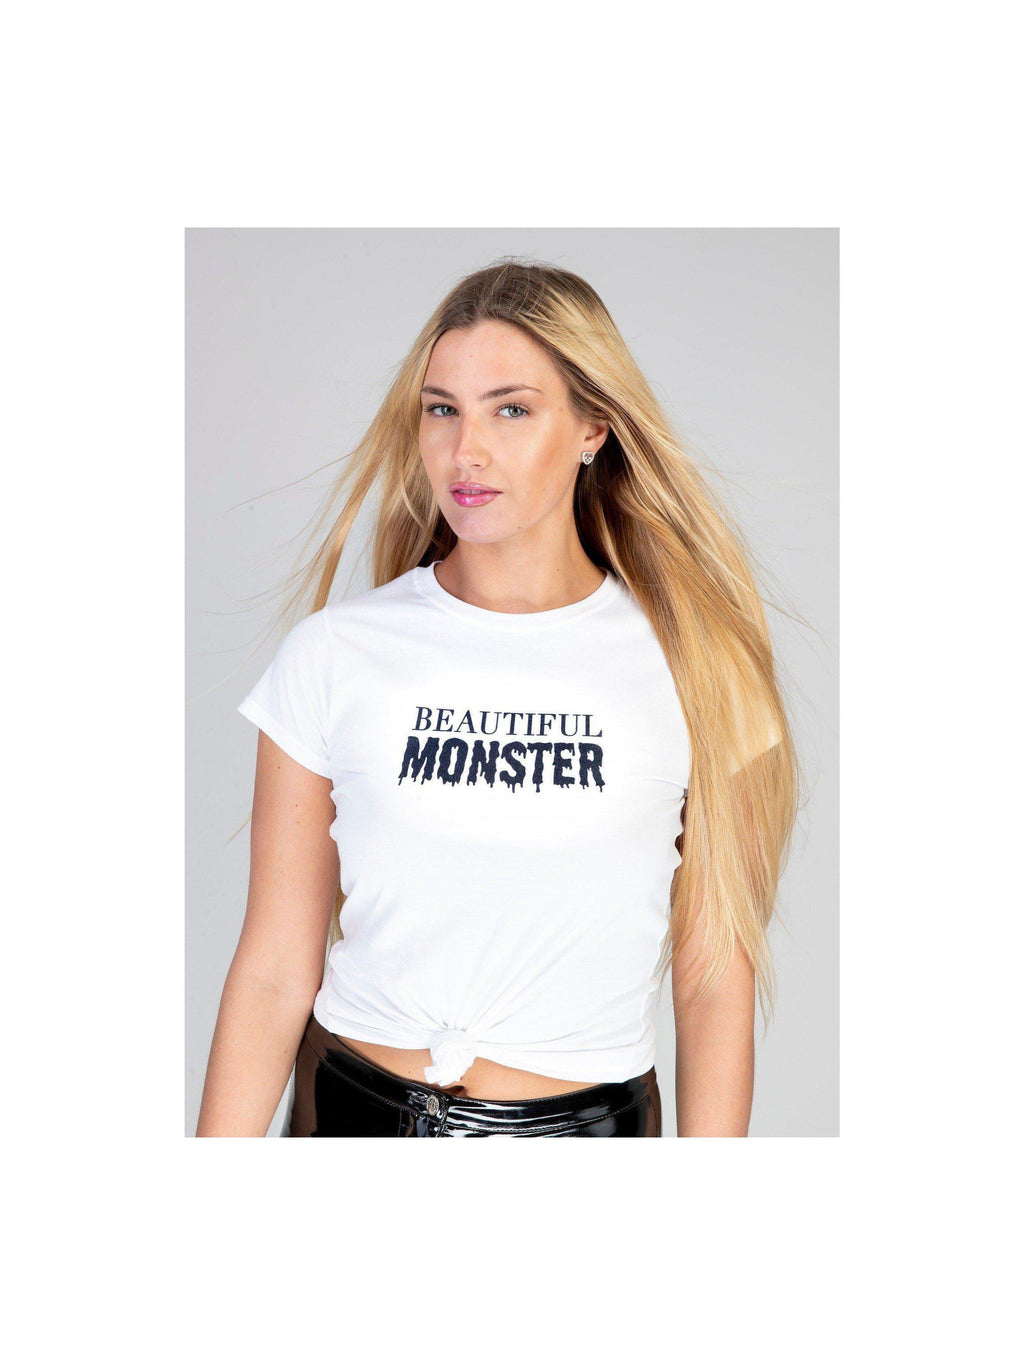 BEAUTIFUL MONSTER t shirt